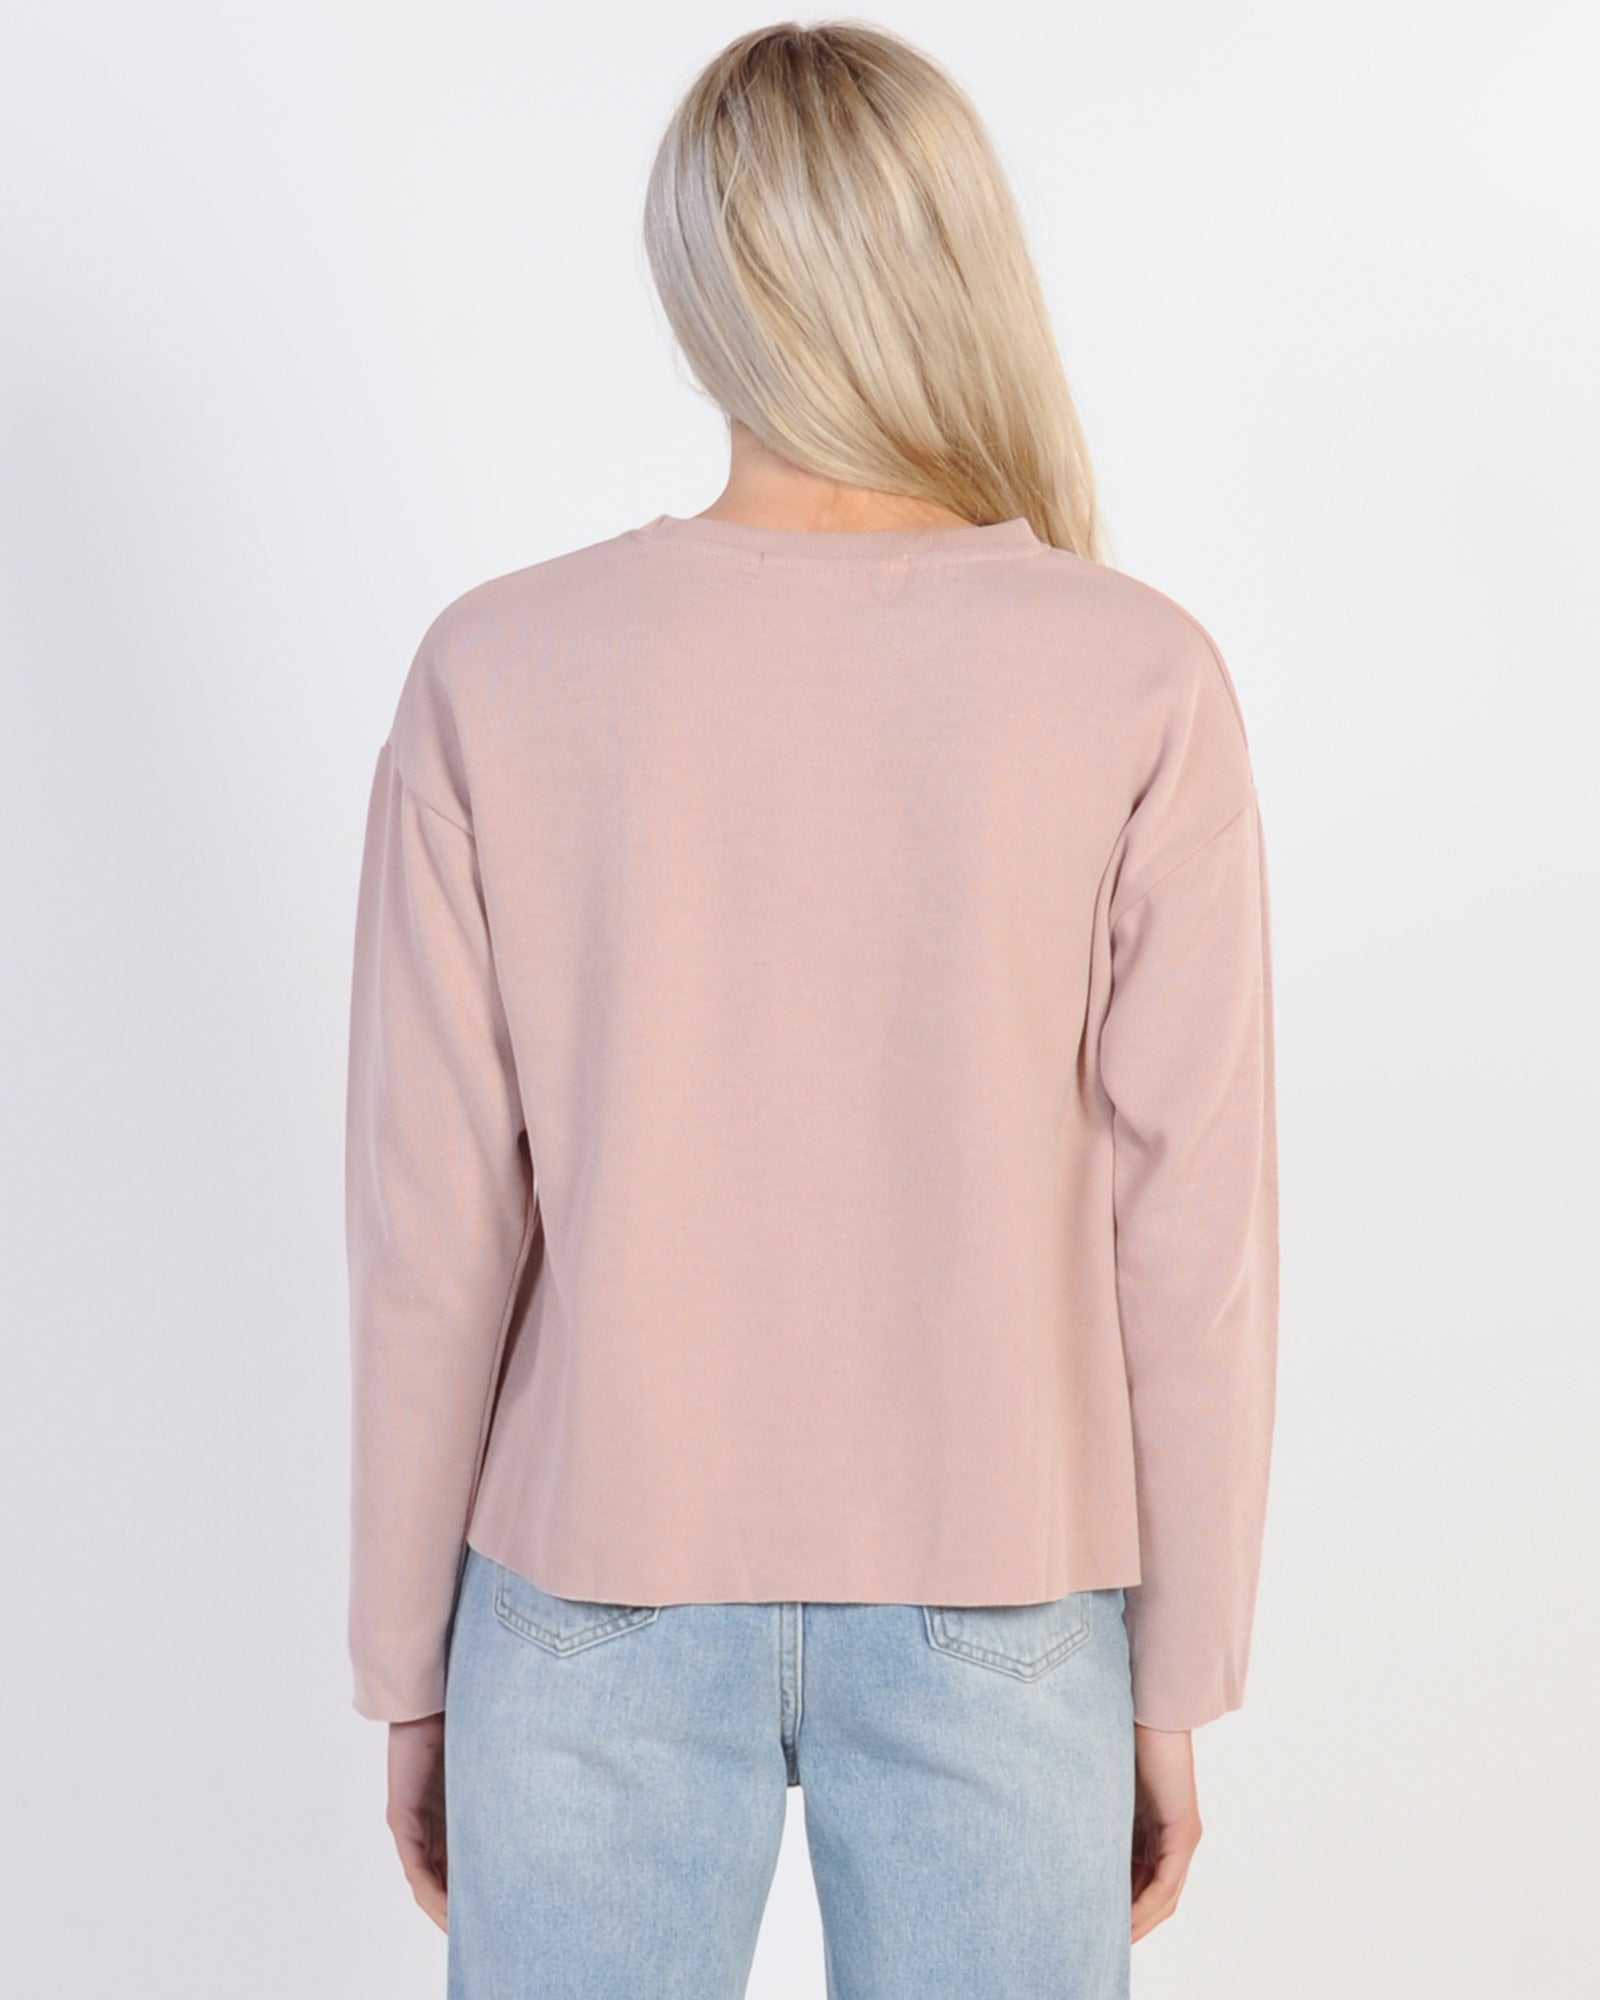 Silent Theory Rage Crew Sweat - Pink